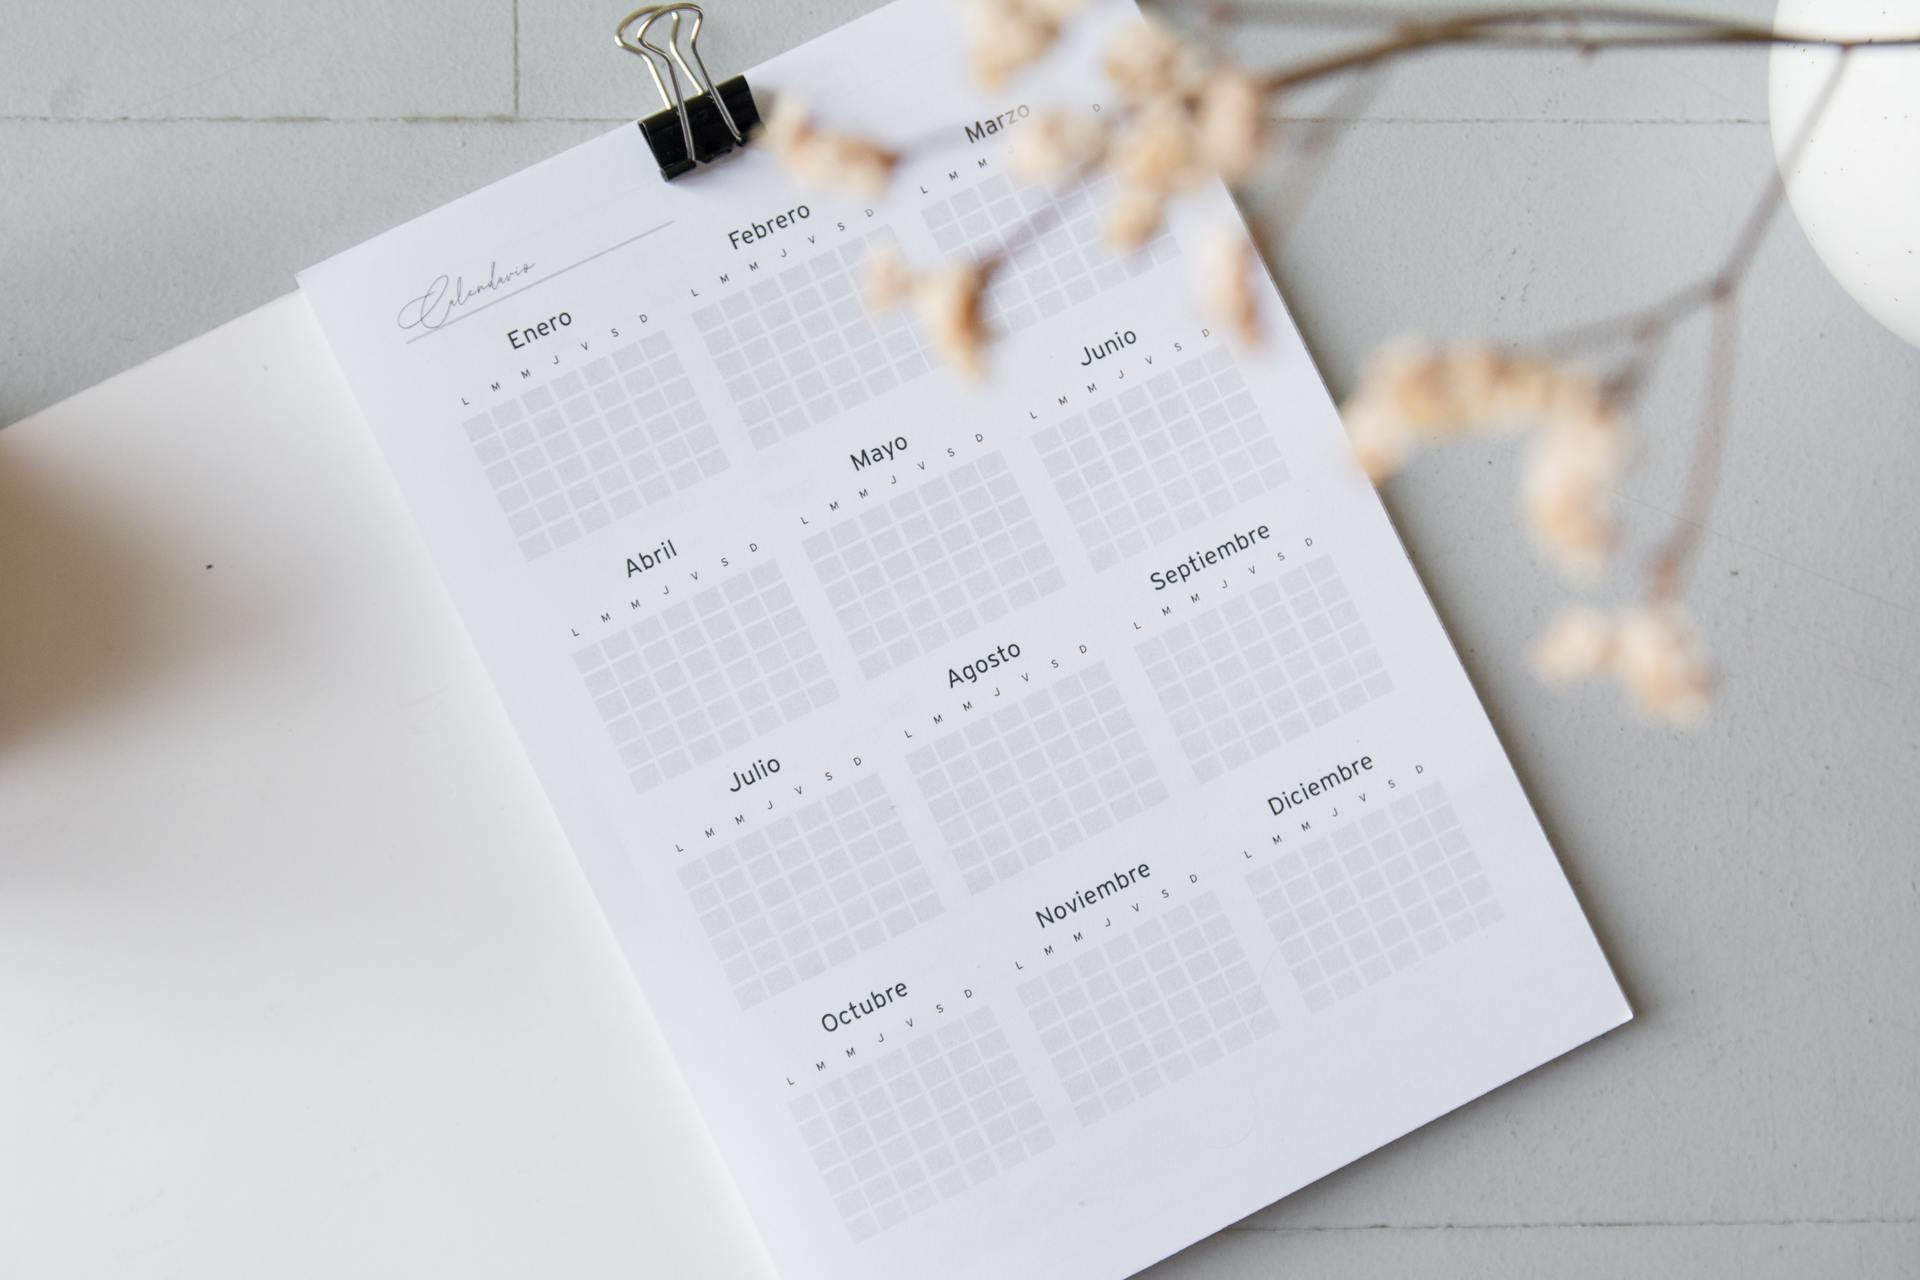 How to write dates in Spanish